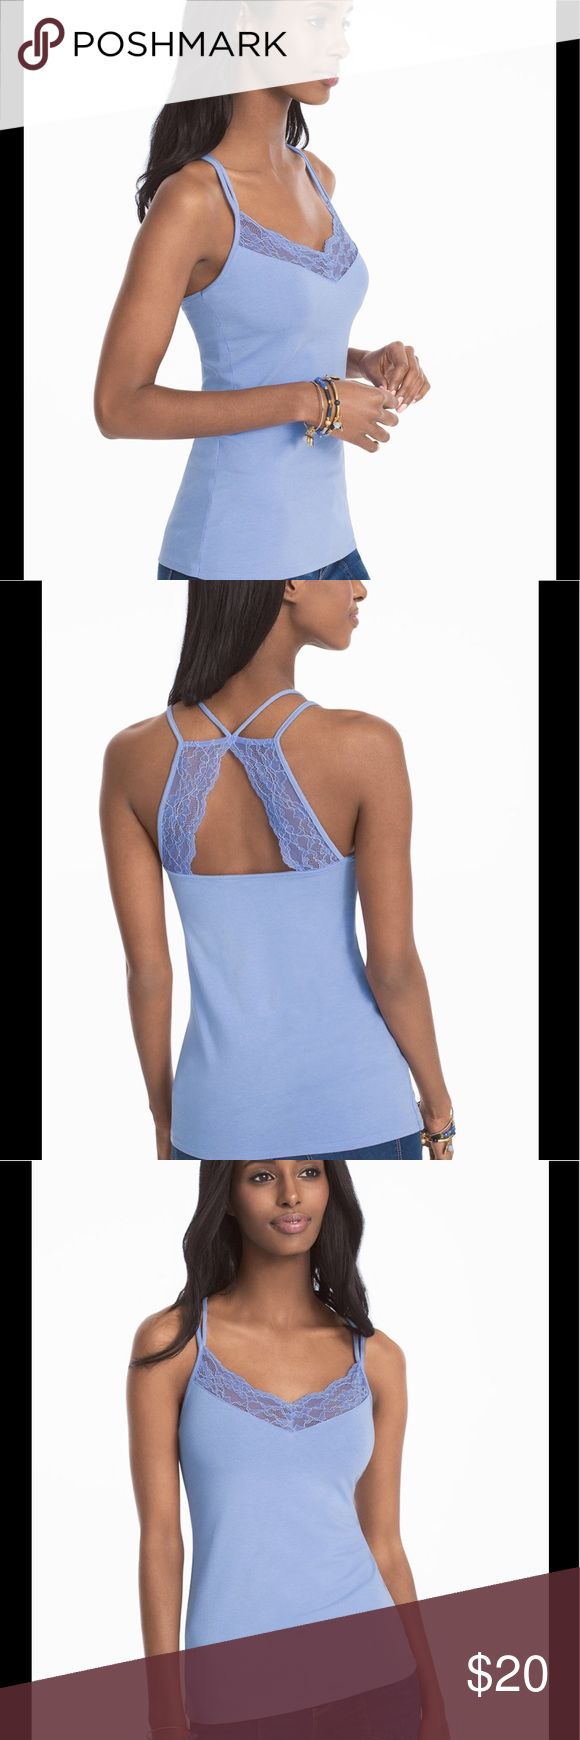 """White House Black Market Strappy Blue Cami Cute cami with lace details and a strappy back in a shade called """"summer sky"""". White House Black Market Tops Camisoles"""